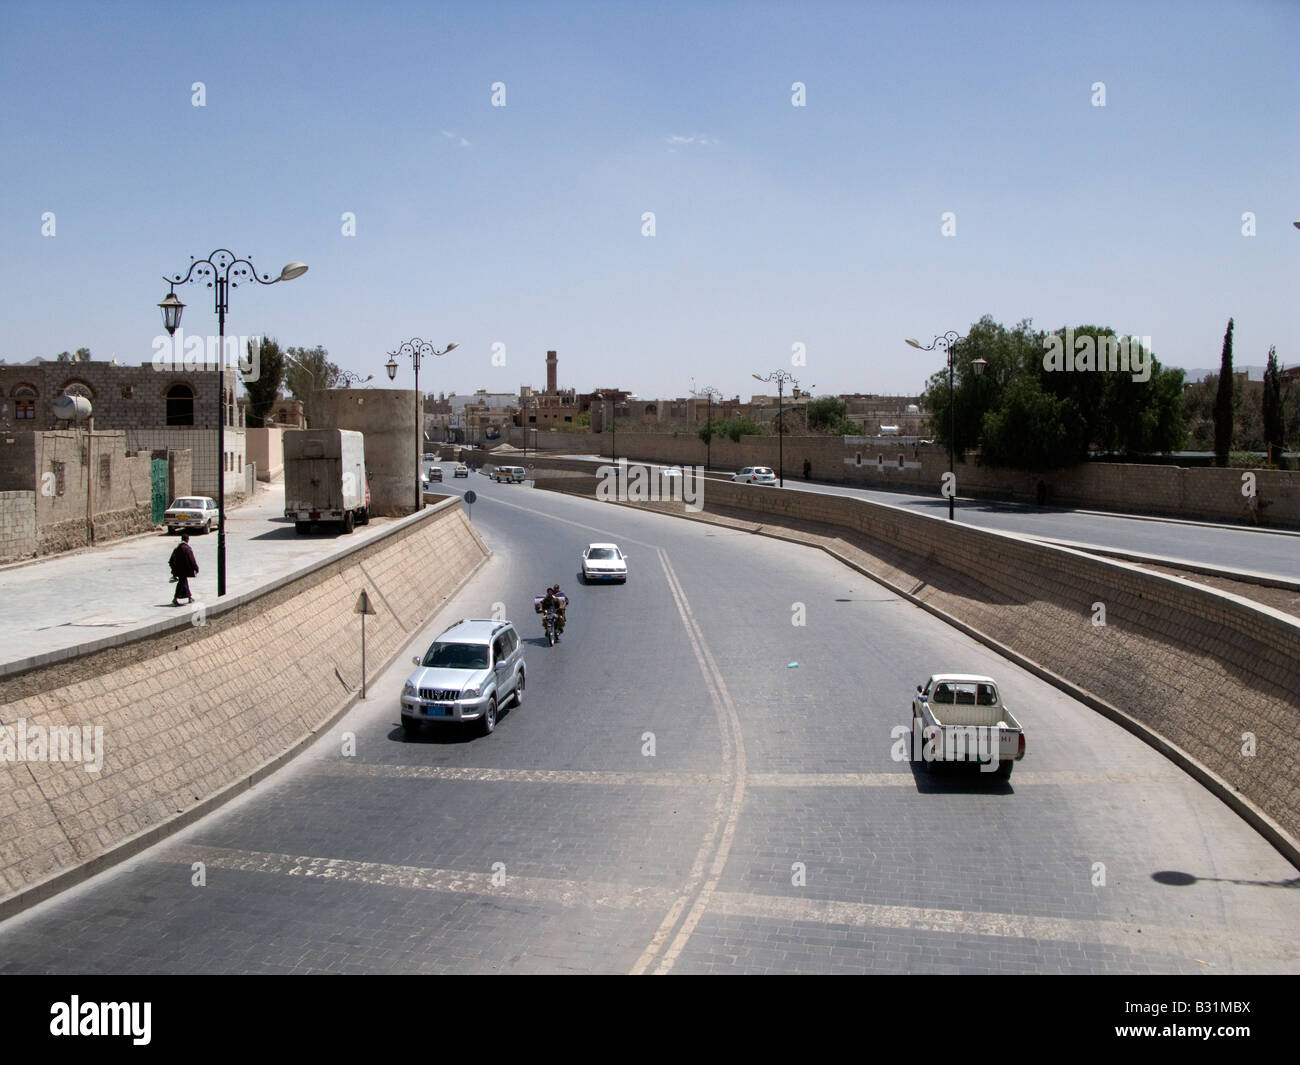 The Saila river with its paved riverbed in Sanaa, Yemen - Stock Image